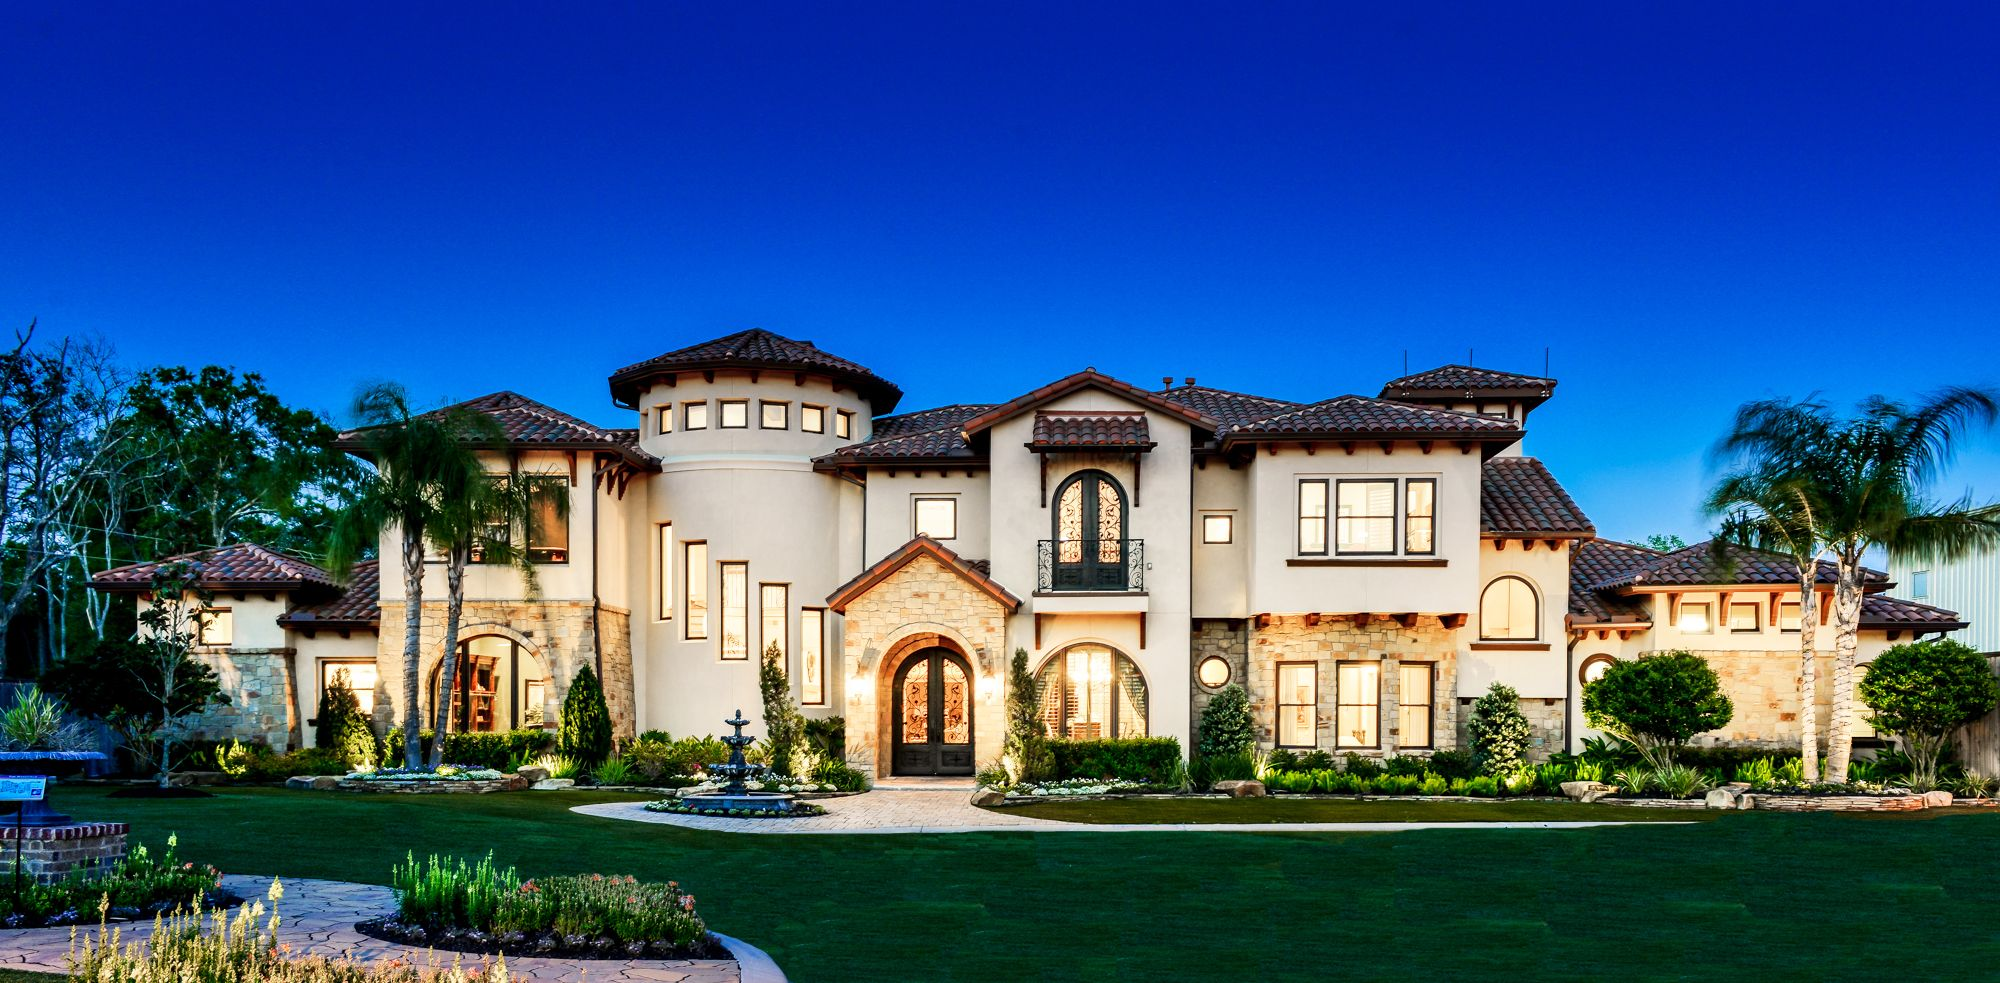 At about 6,000 sq ft, this Italian Mediterranean style custom home ...